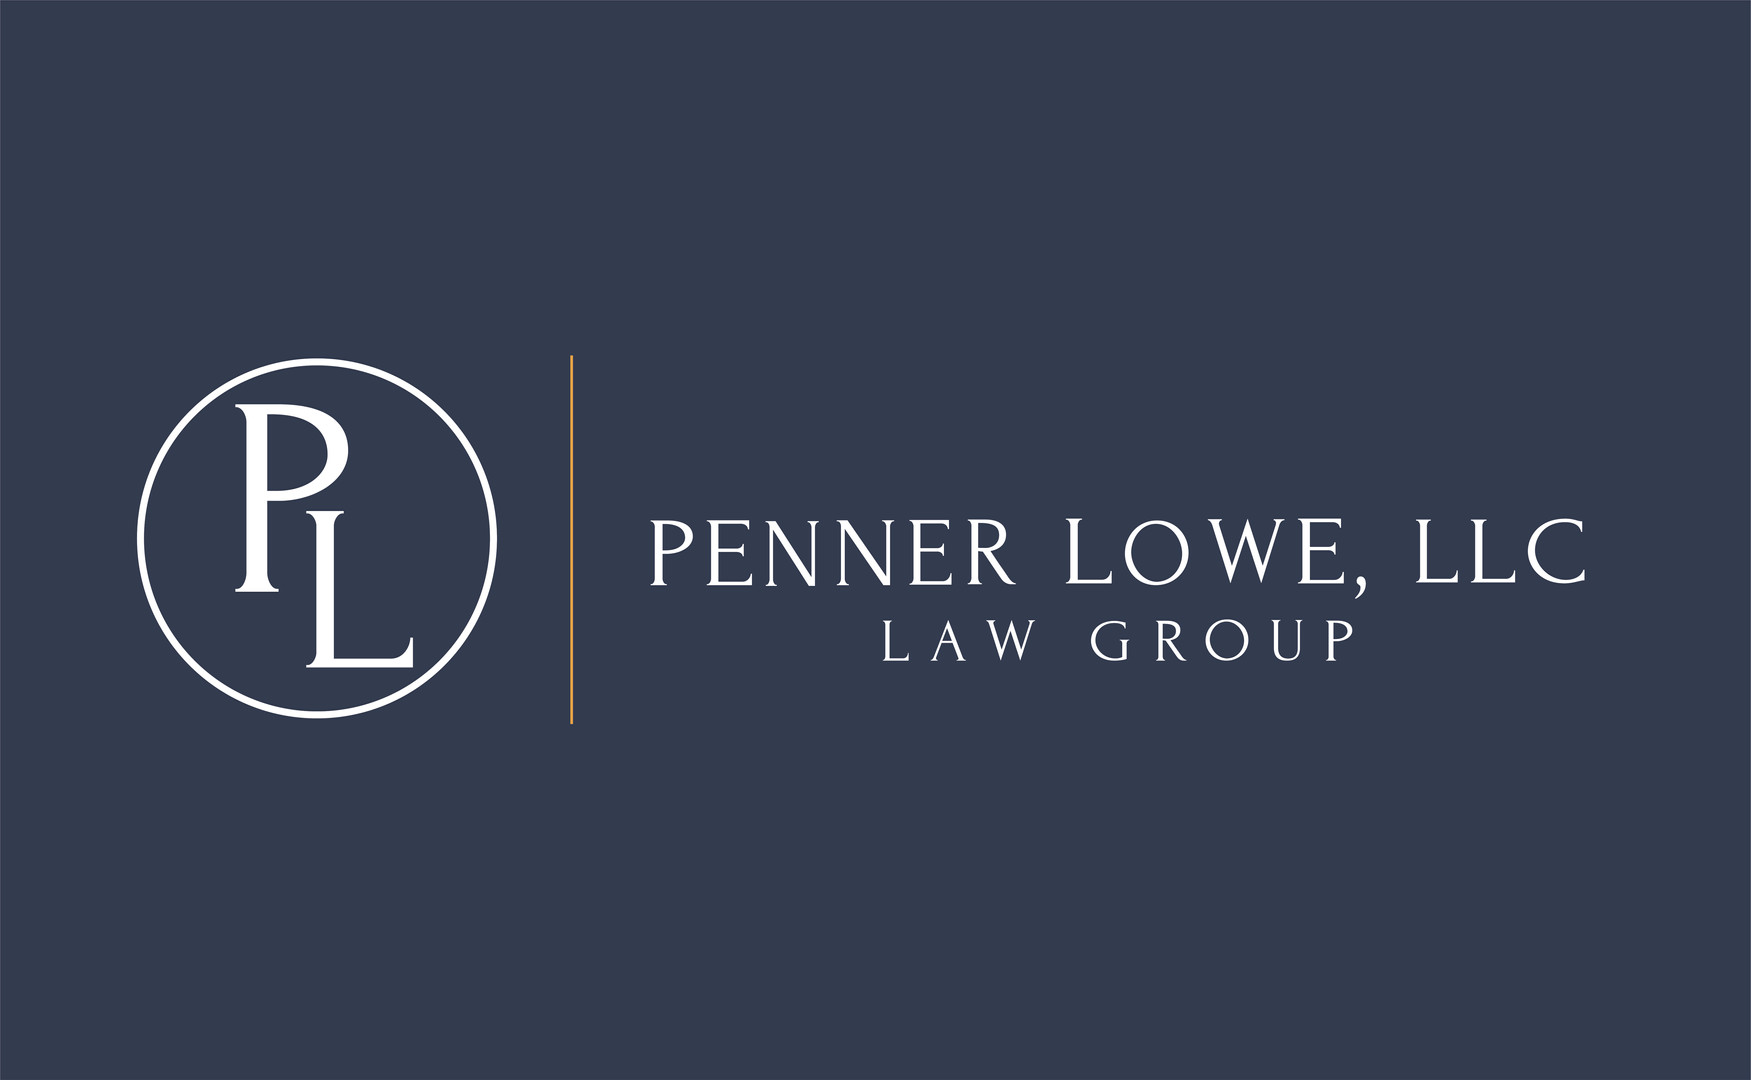 Penner Lowe Law Group